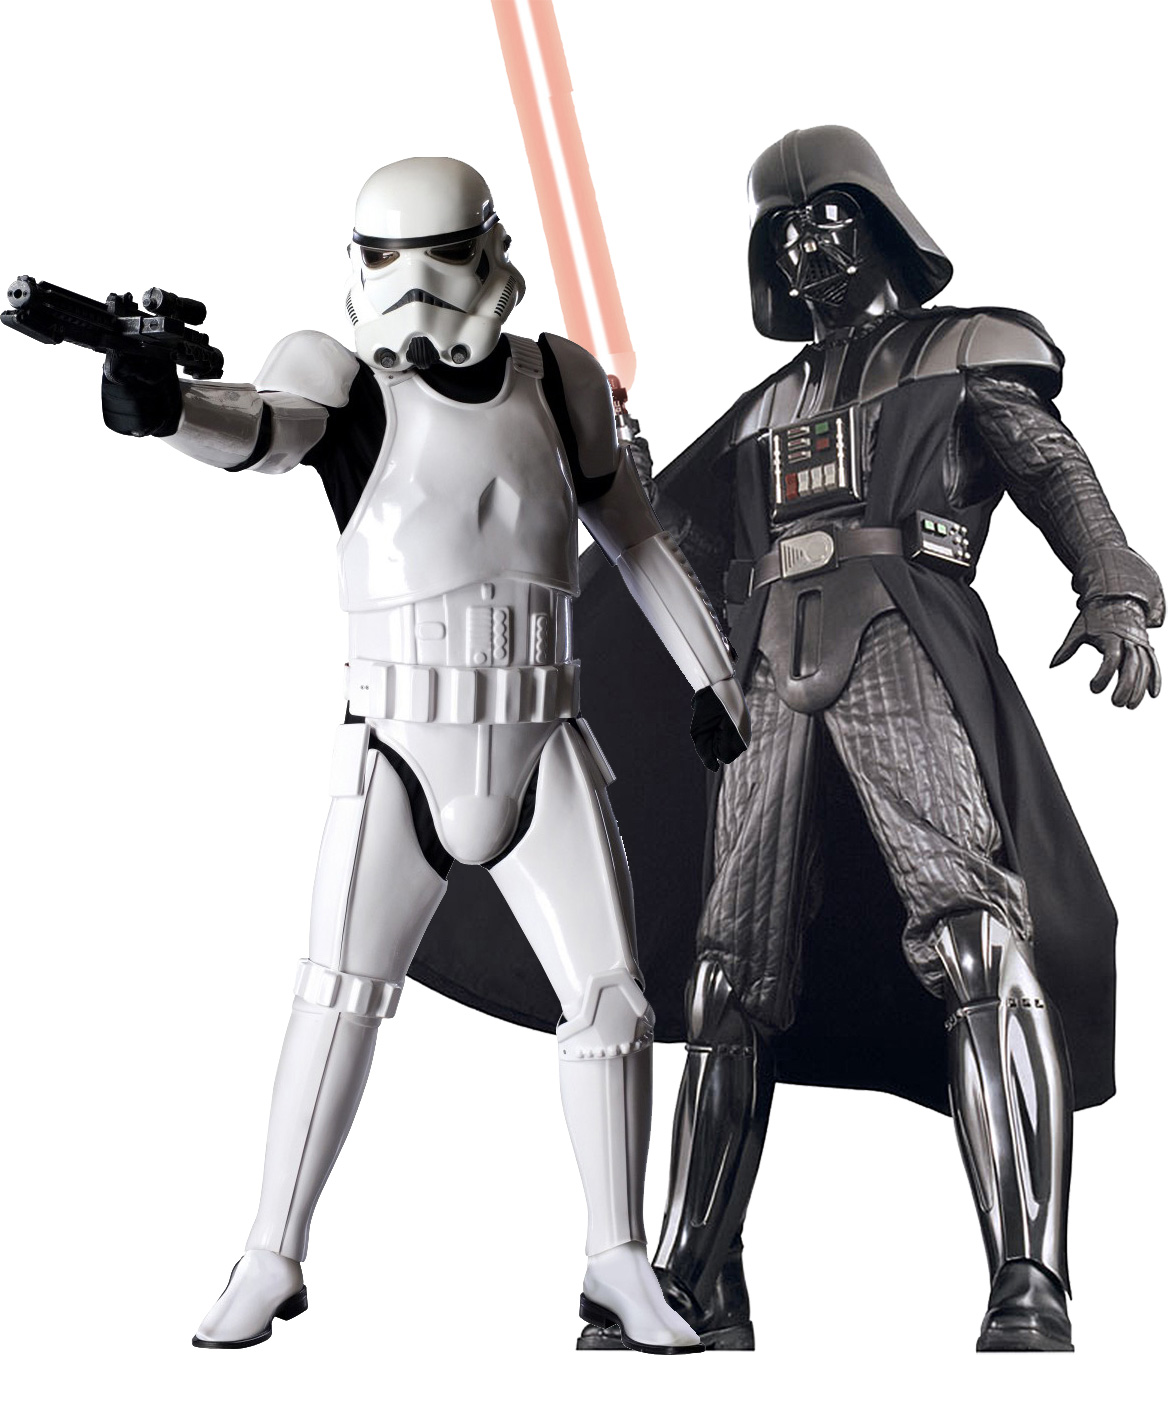 Couple suprême édition dark vador stormtrooper star wars